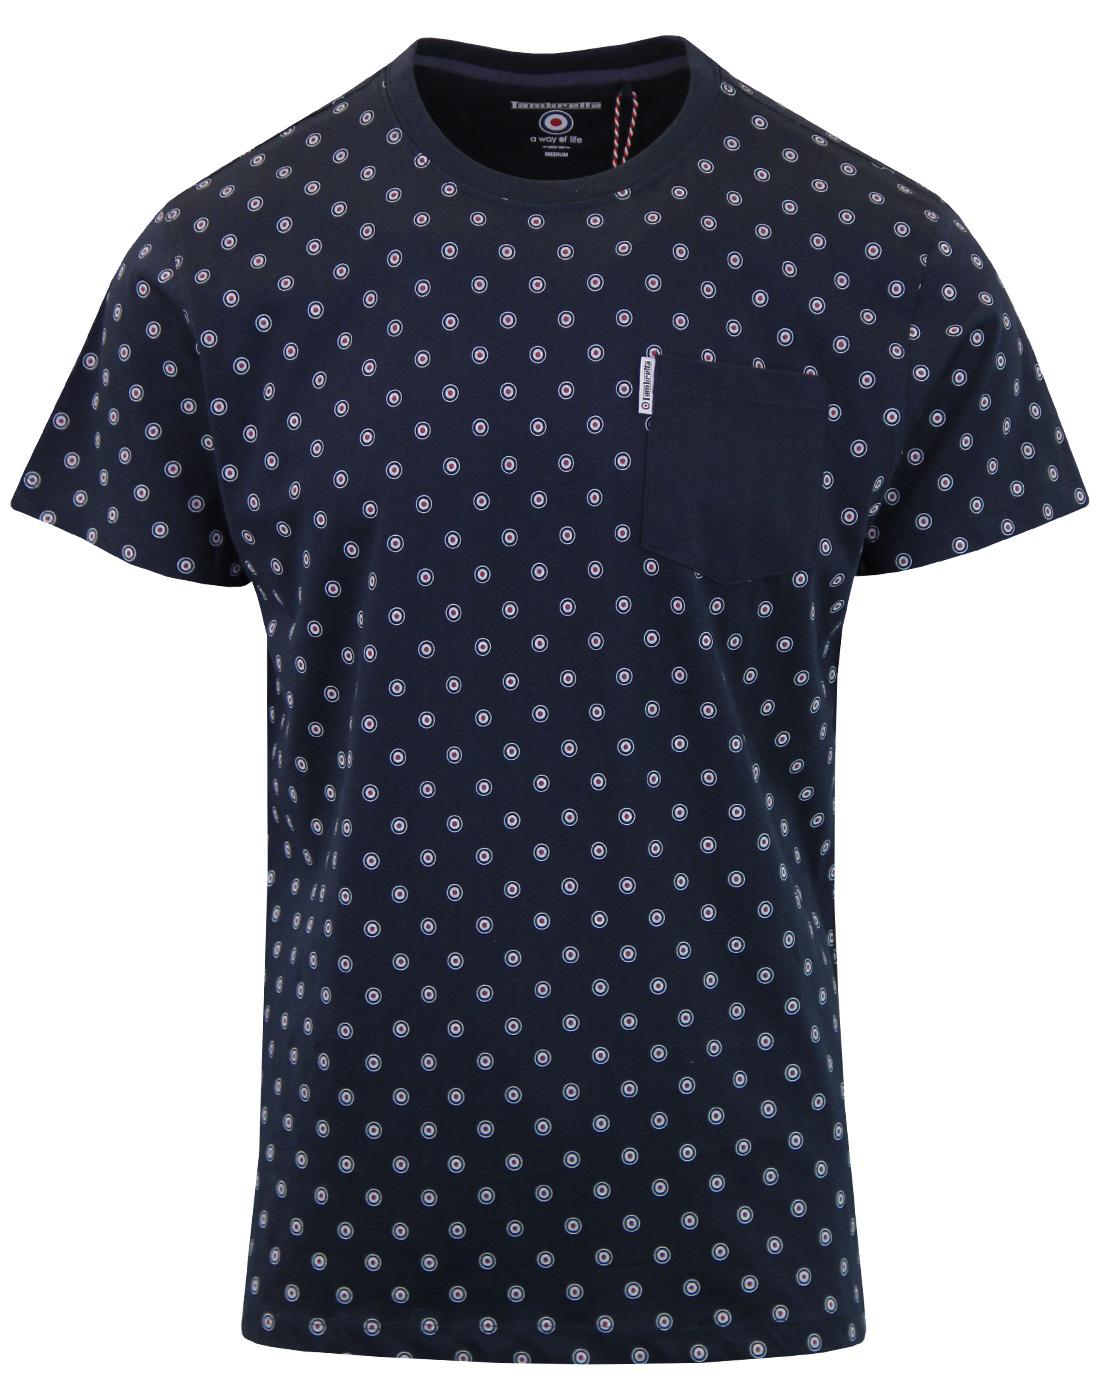 LAMBRETTA Retro Mod Target Pocket T-shirt (Navy)